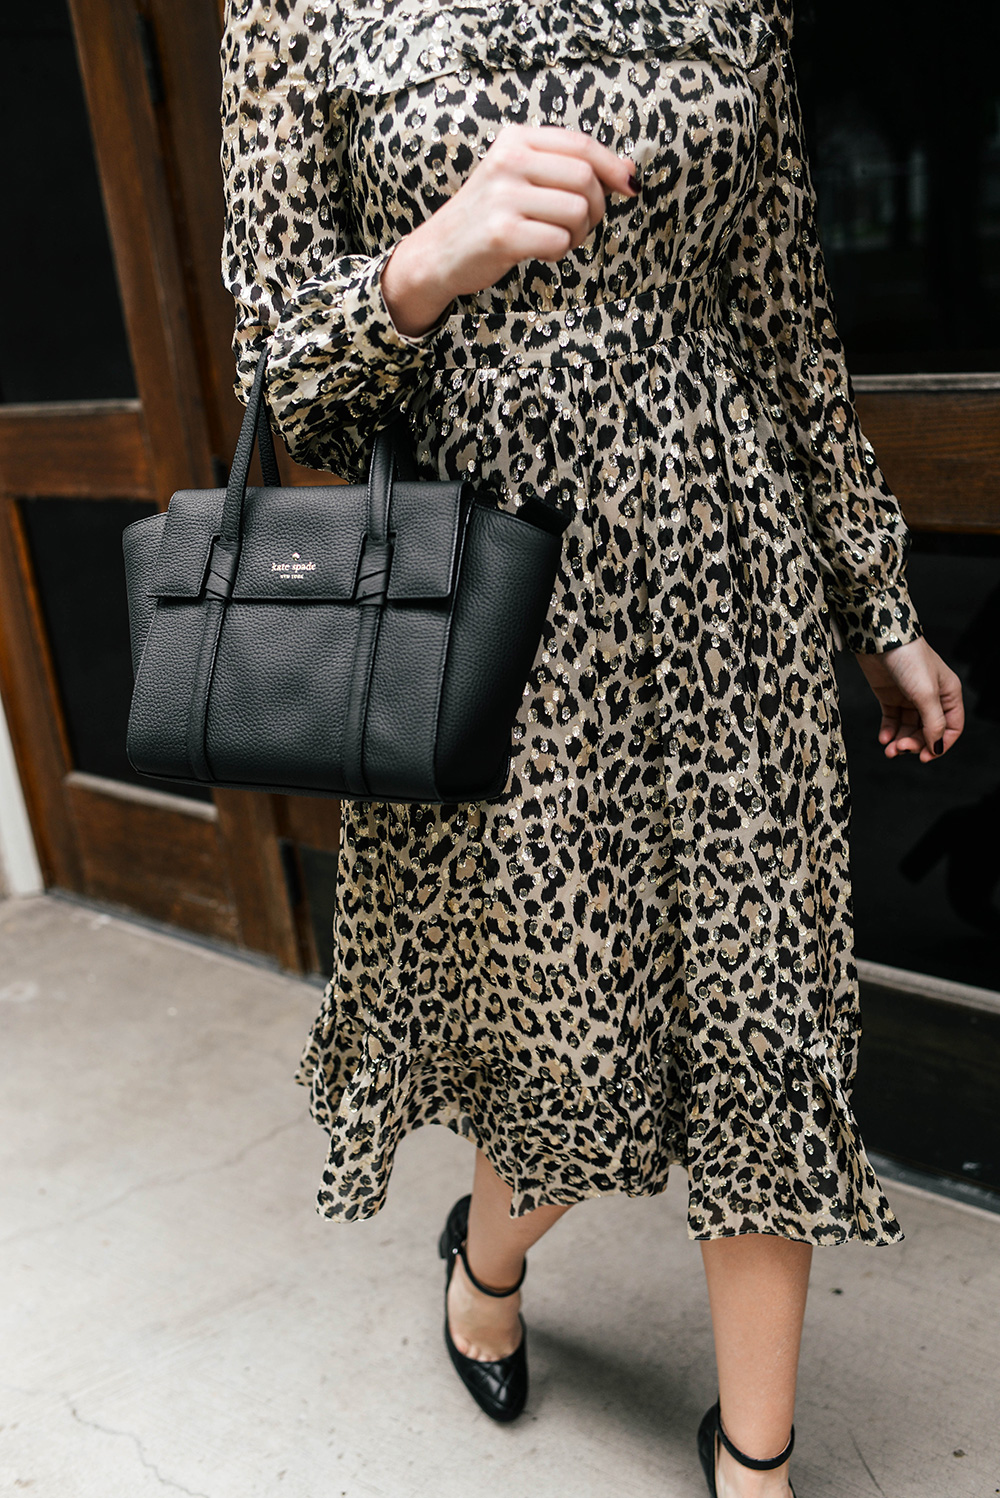 Kate Spade New York Leopard Midi Dress | The Style Scribe